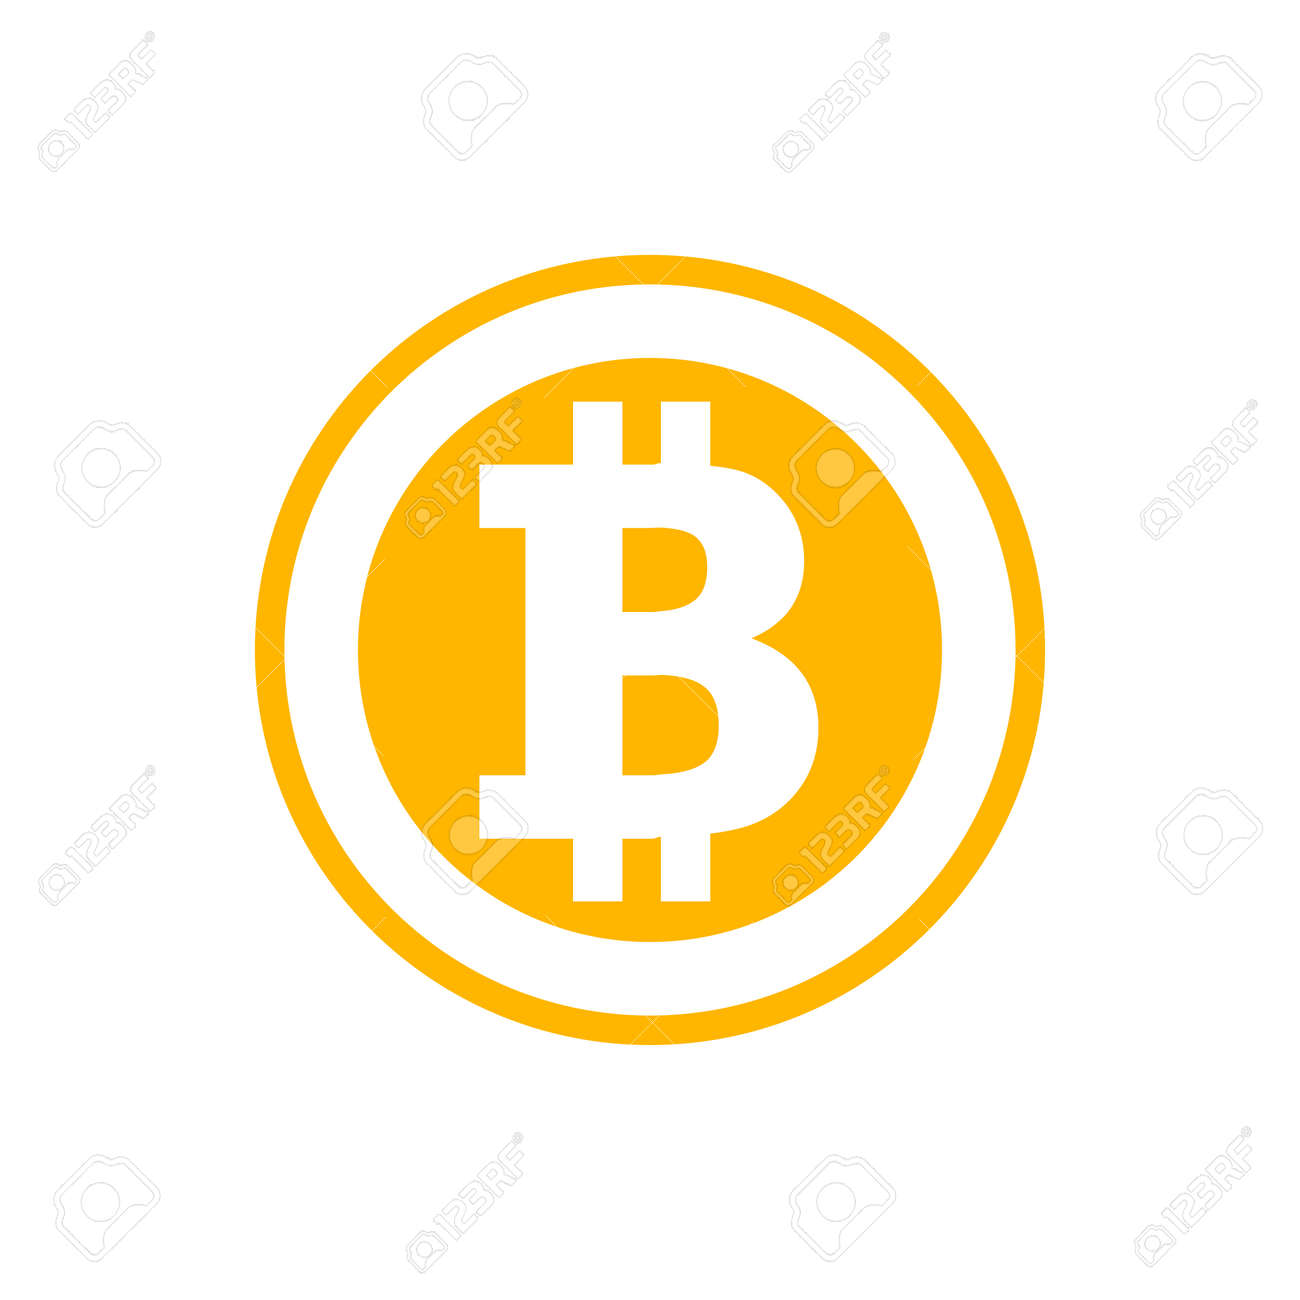 Bitcoin symbol in flat style. Cryptocurrency illustration - 137668982